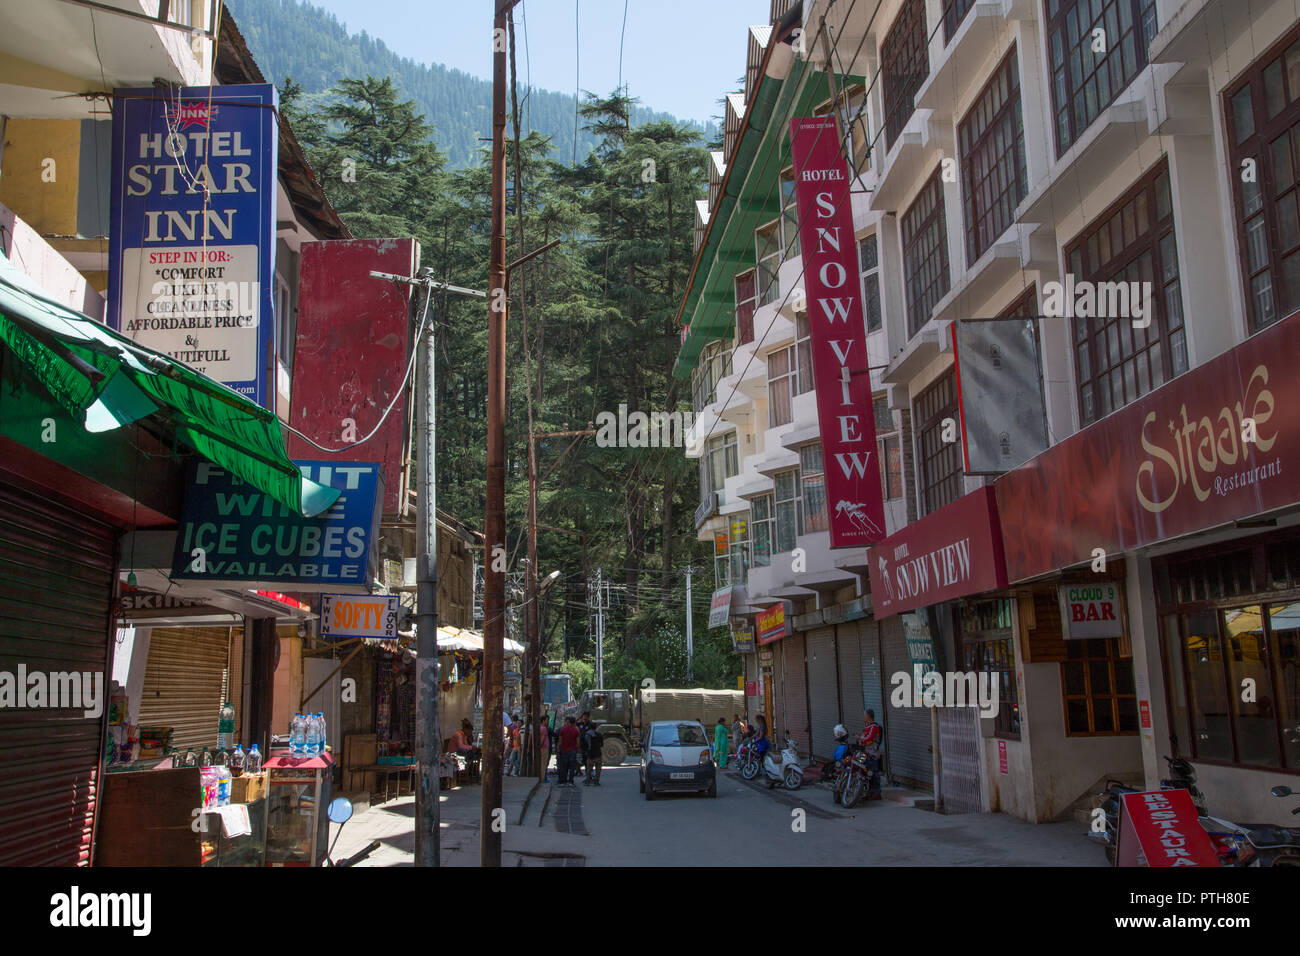 Manali Mall - Himachal Pradesh, India Stock Photo